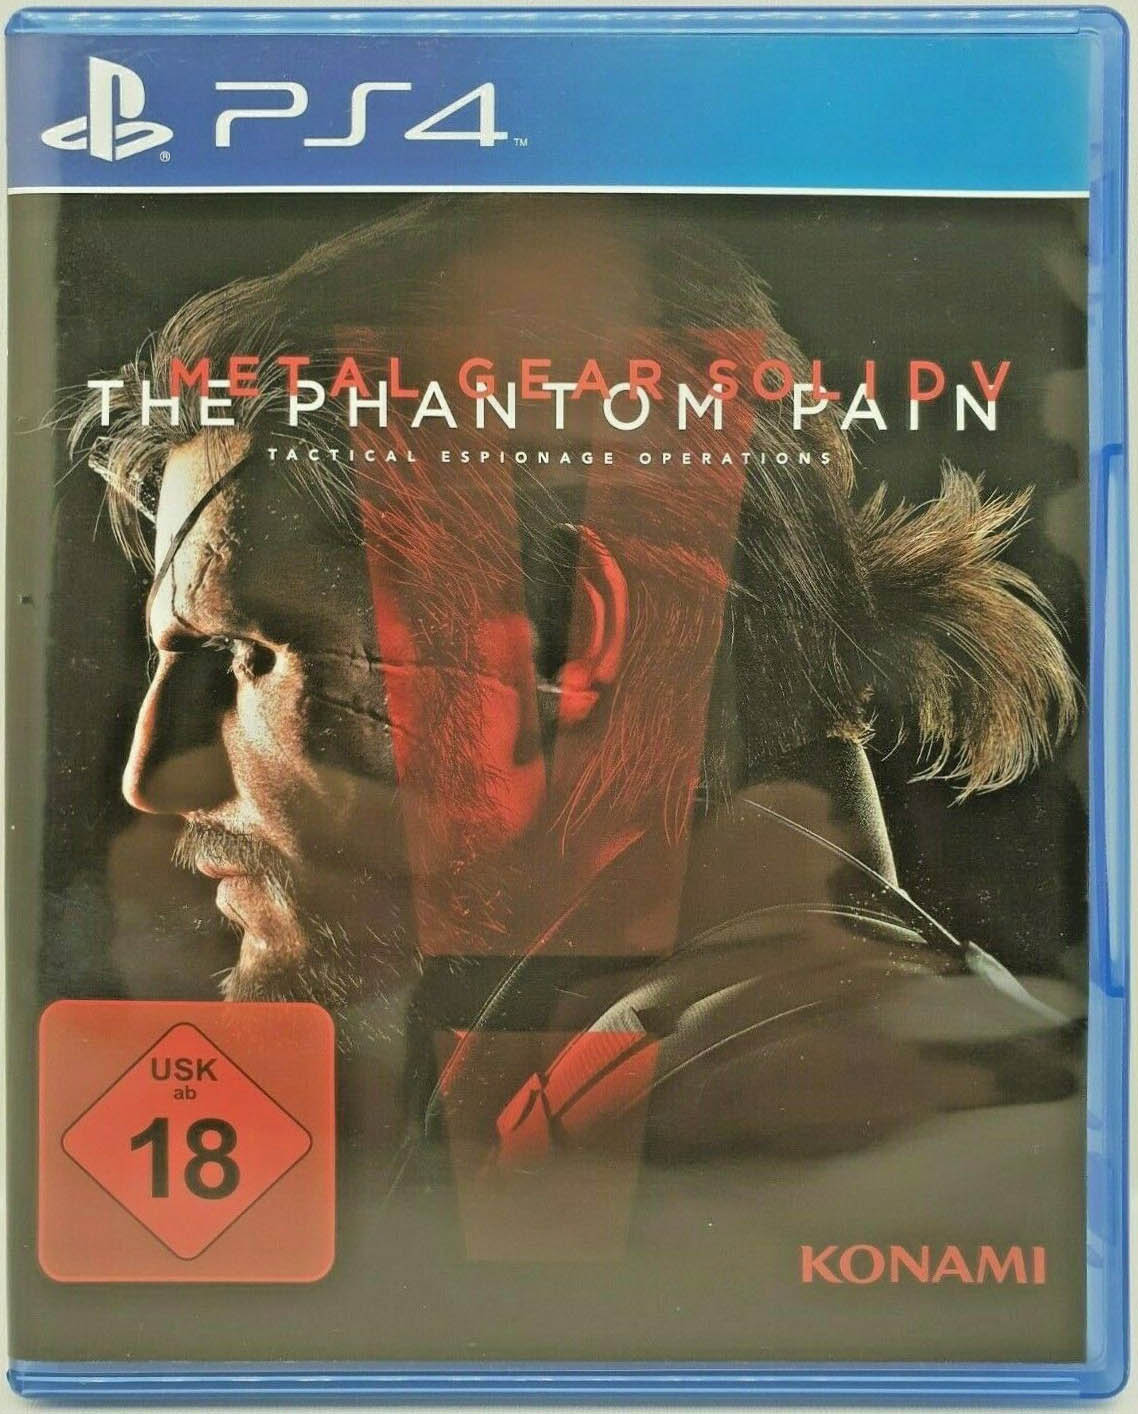 Metal Gear Solid V: The Phantom Pain Издание в Германии